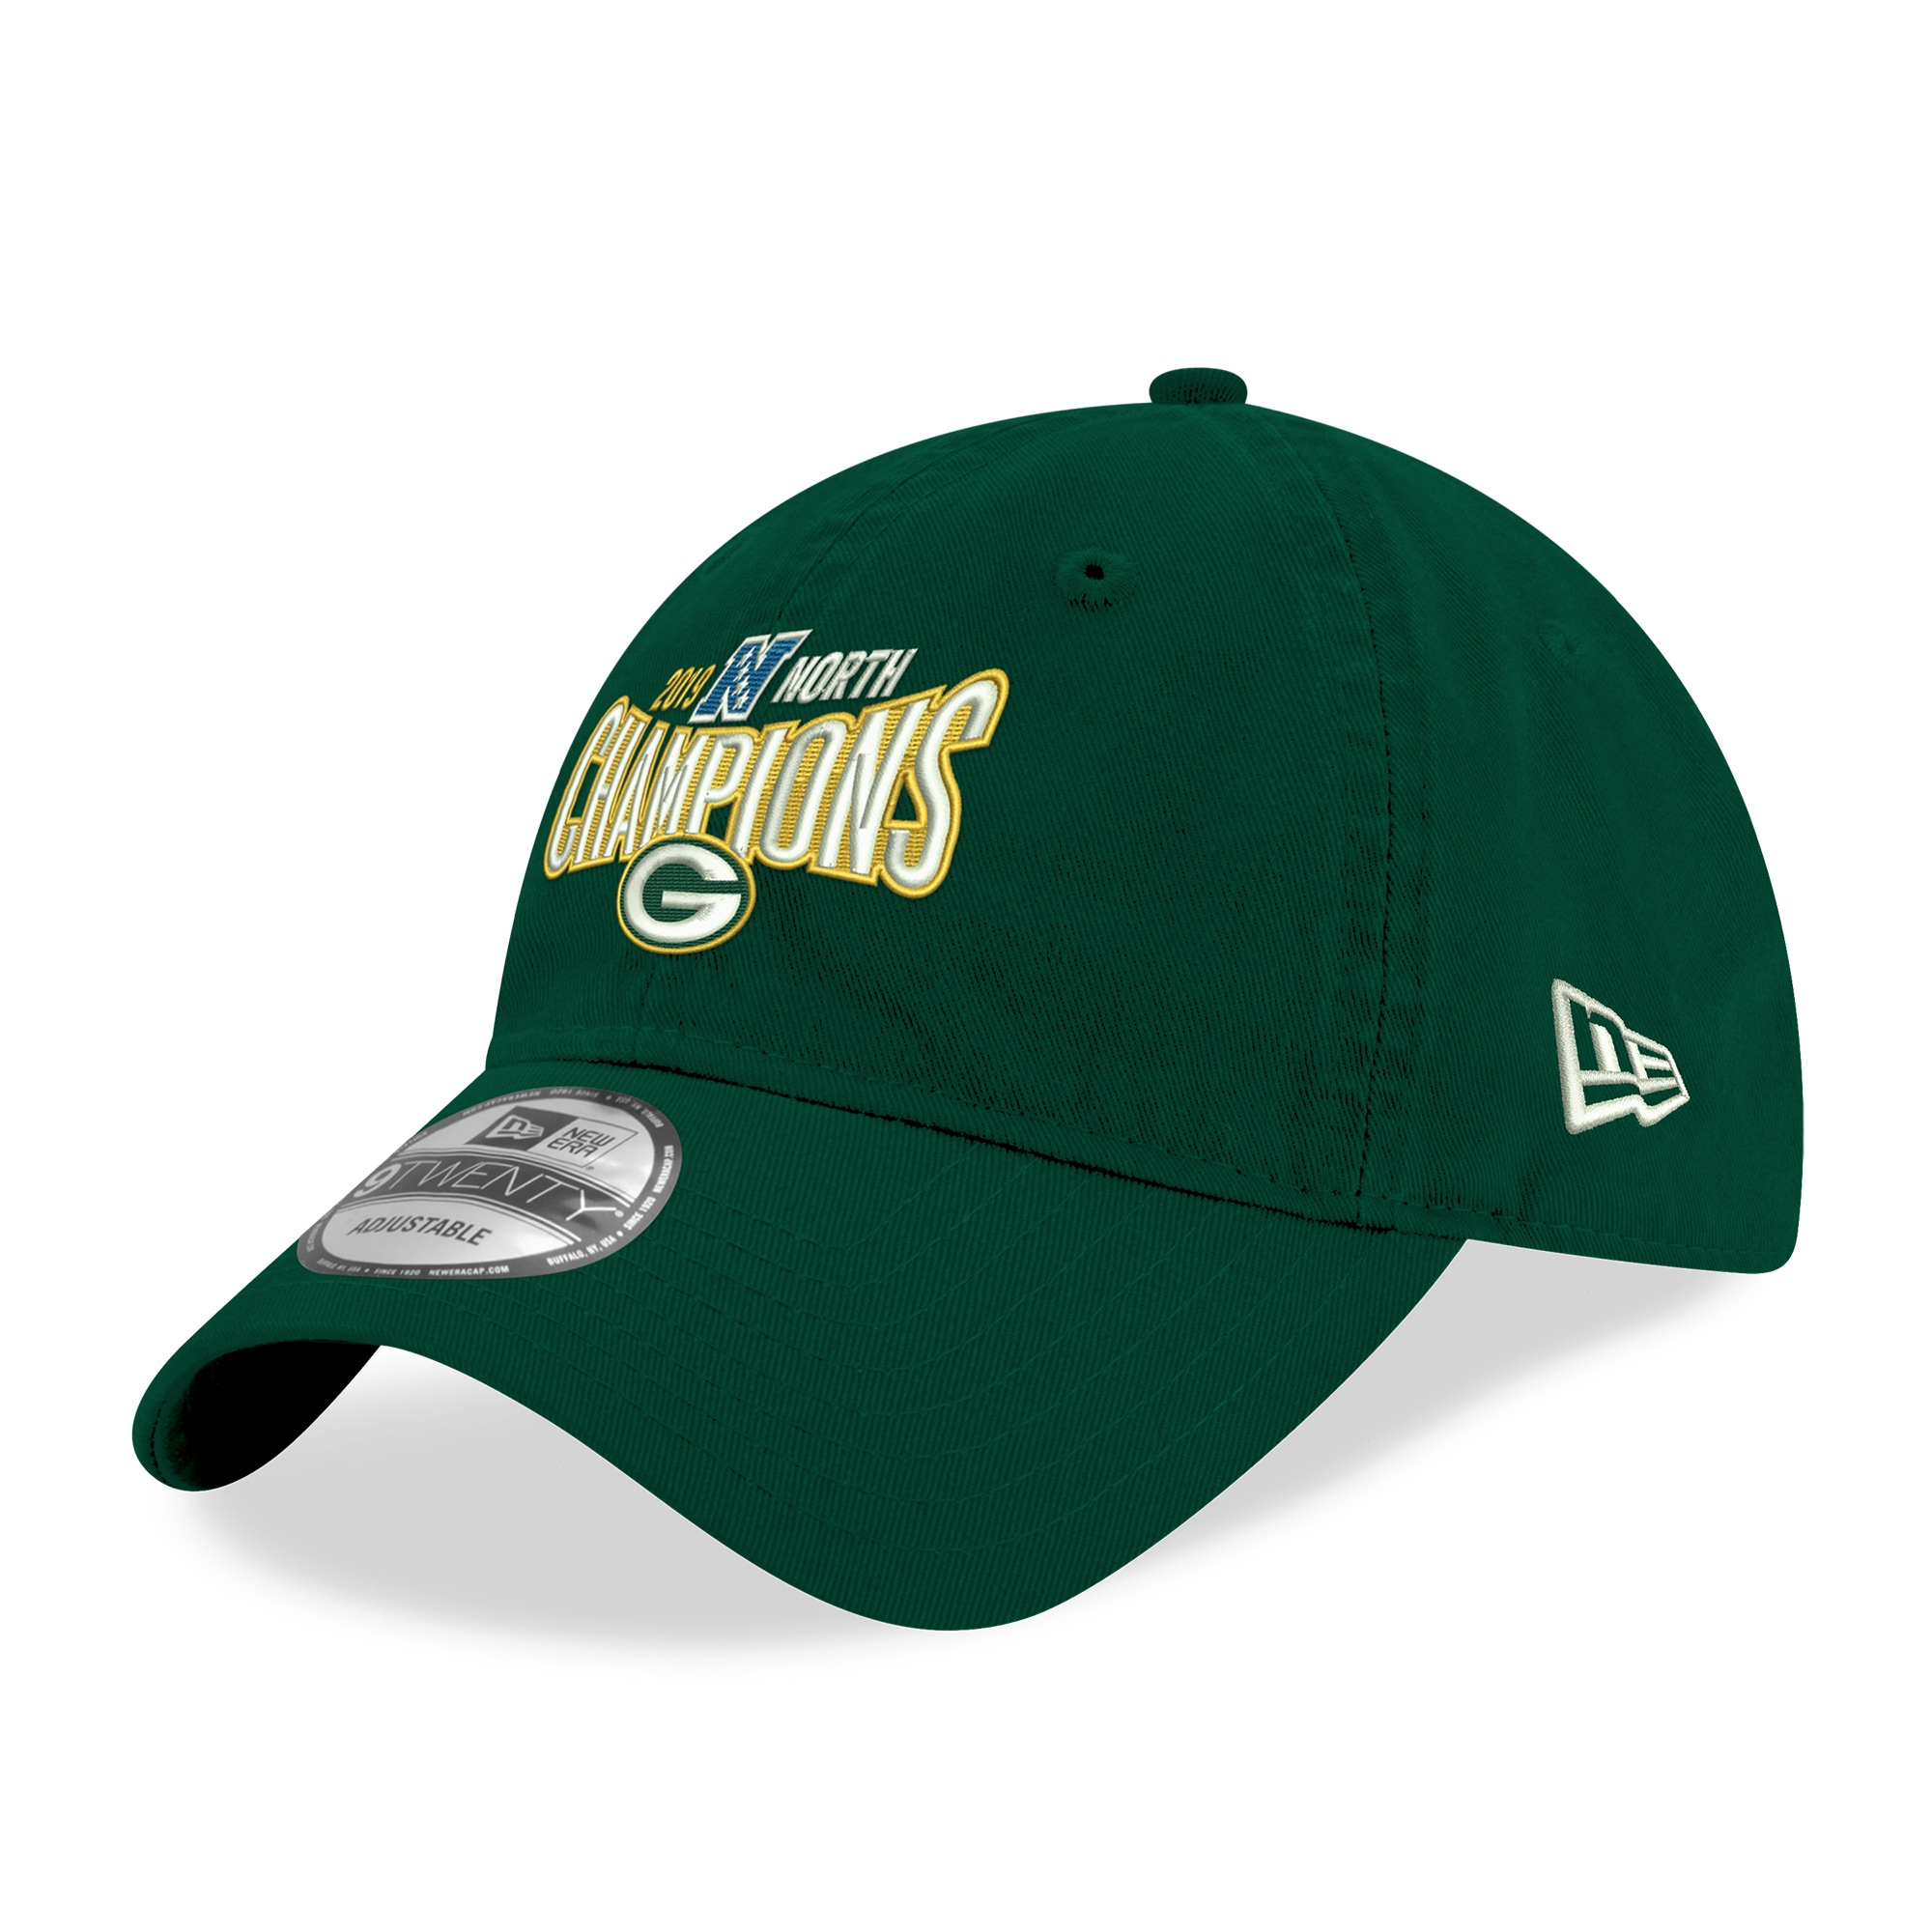 Green Bay Packers New Era 2019 NFC North Division Champions 9TWENTY Adjustable Hat - Green